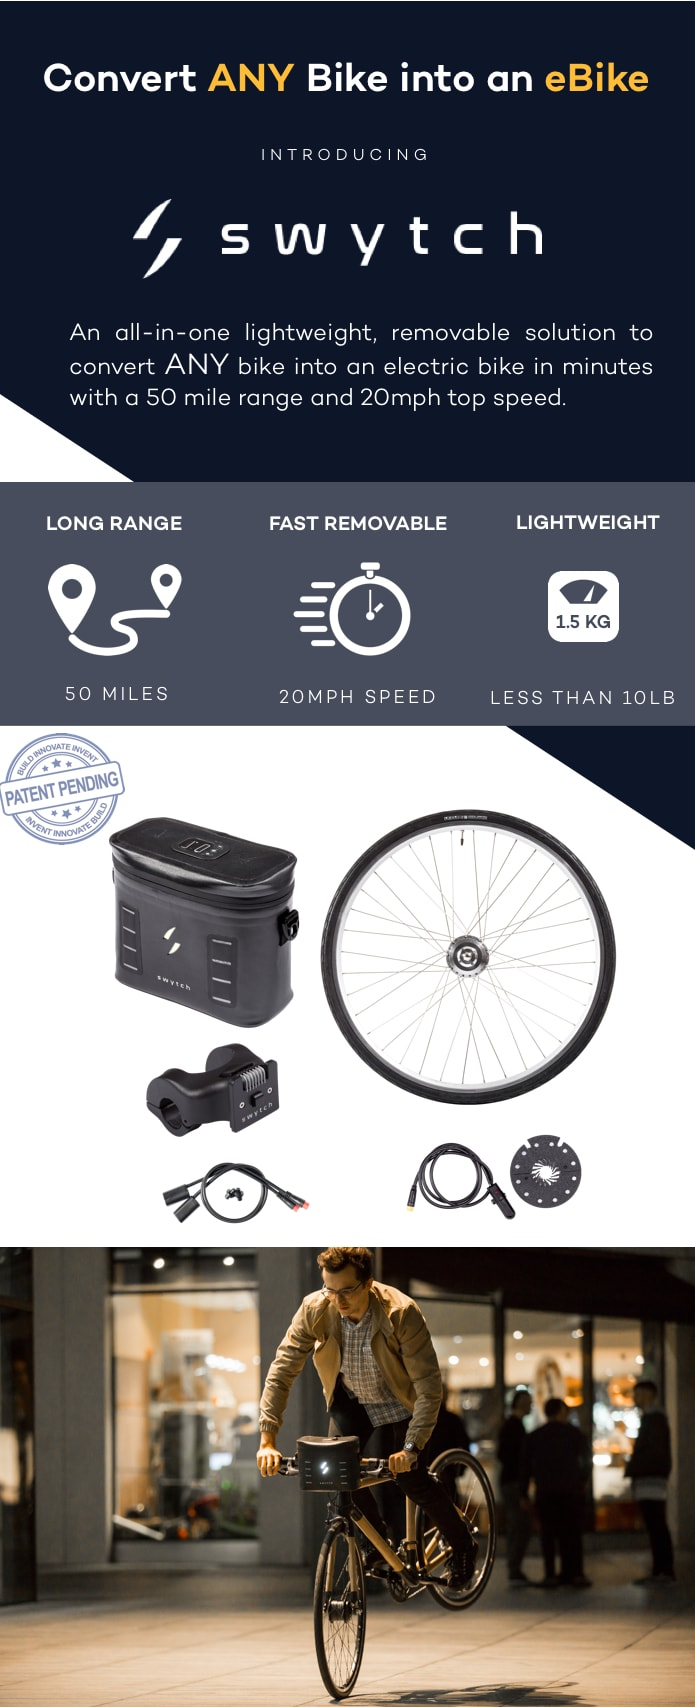 82707009456 It is a spin-off brand of Panda eBikes, the result of 4 years in the eBike  conversion business trying to design a simple, lightweight and universal  eBike ...